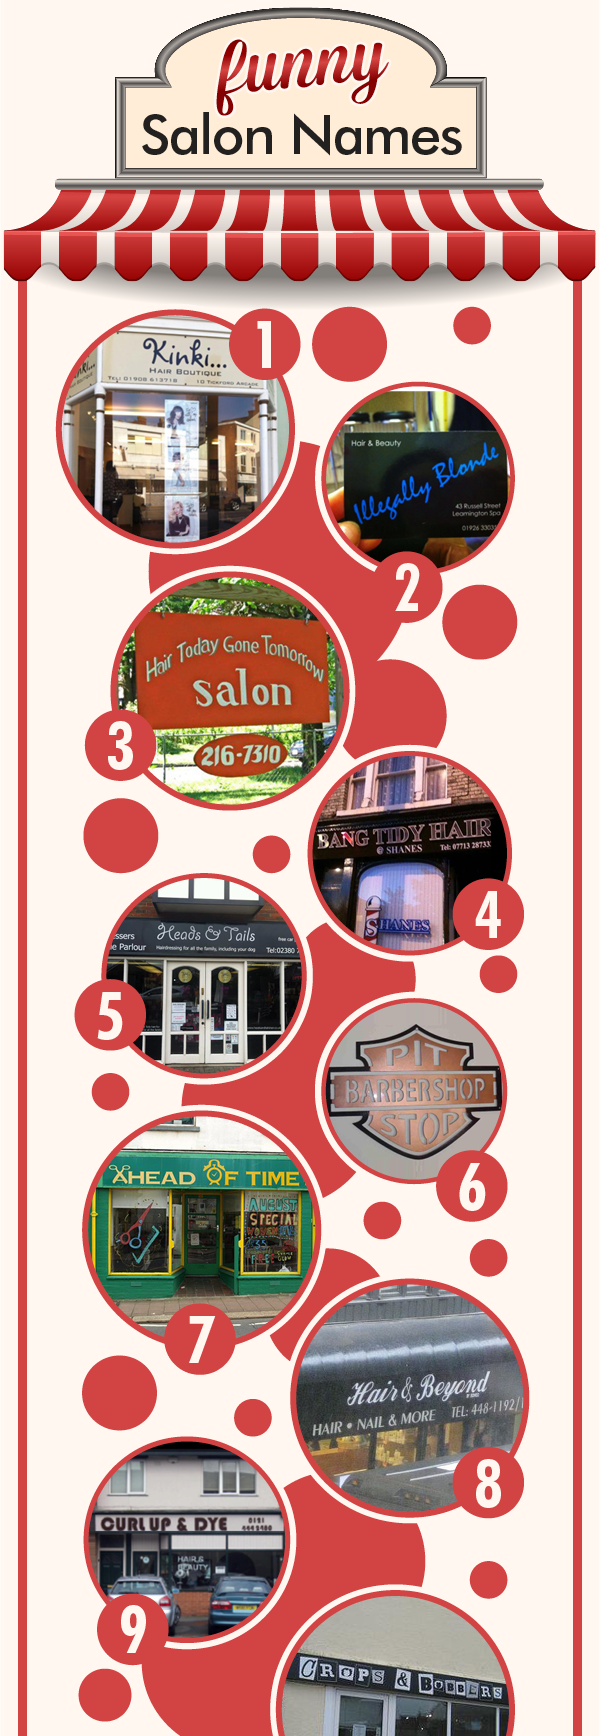 Funny Salon Names Infographic  Salons Direct